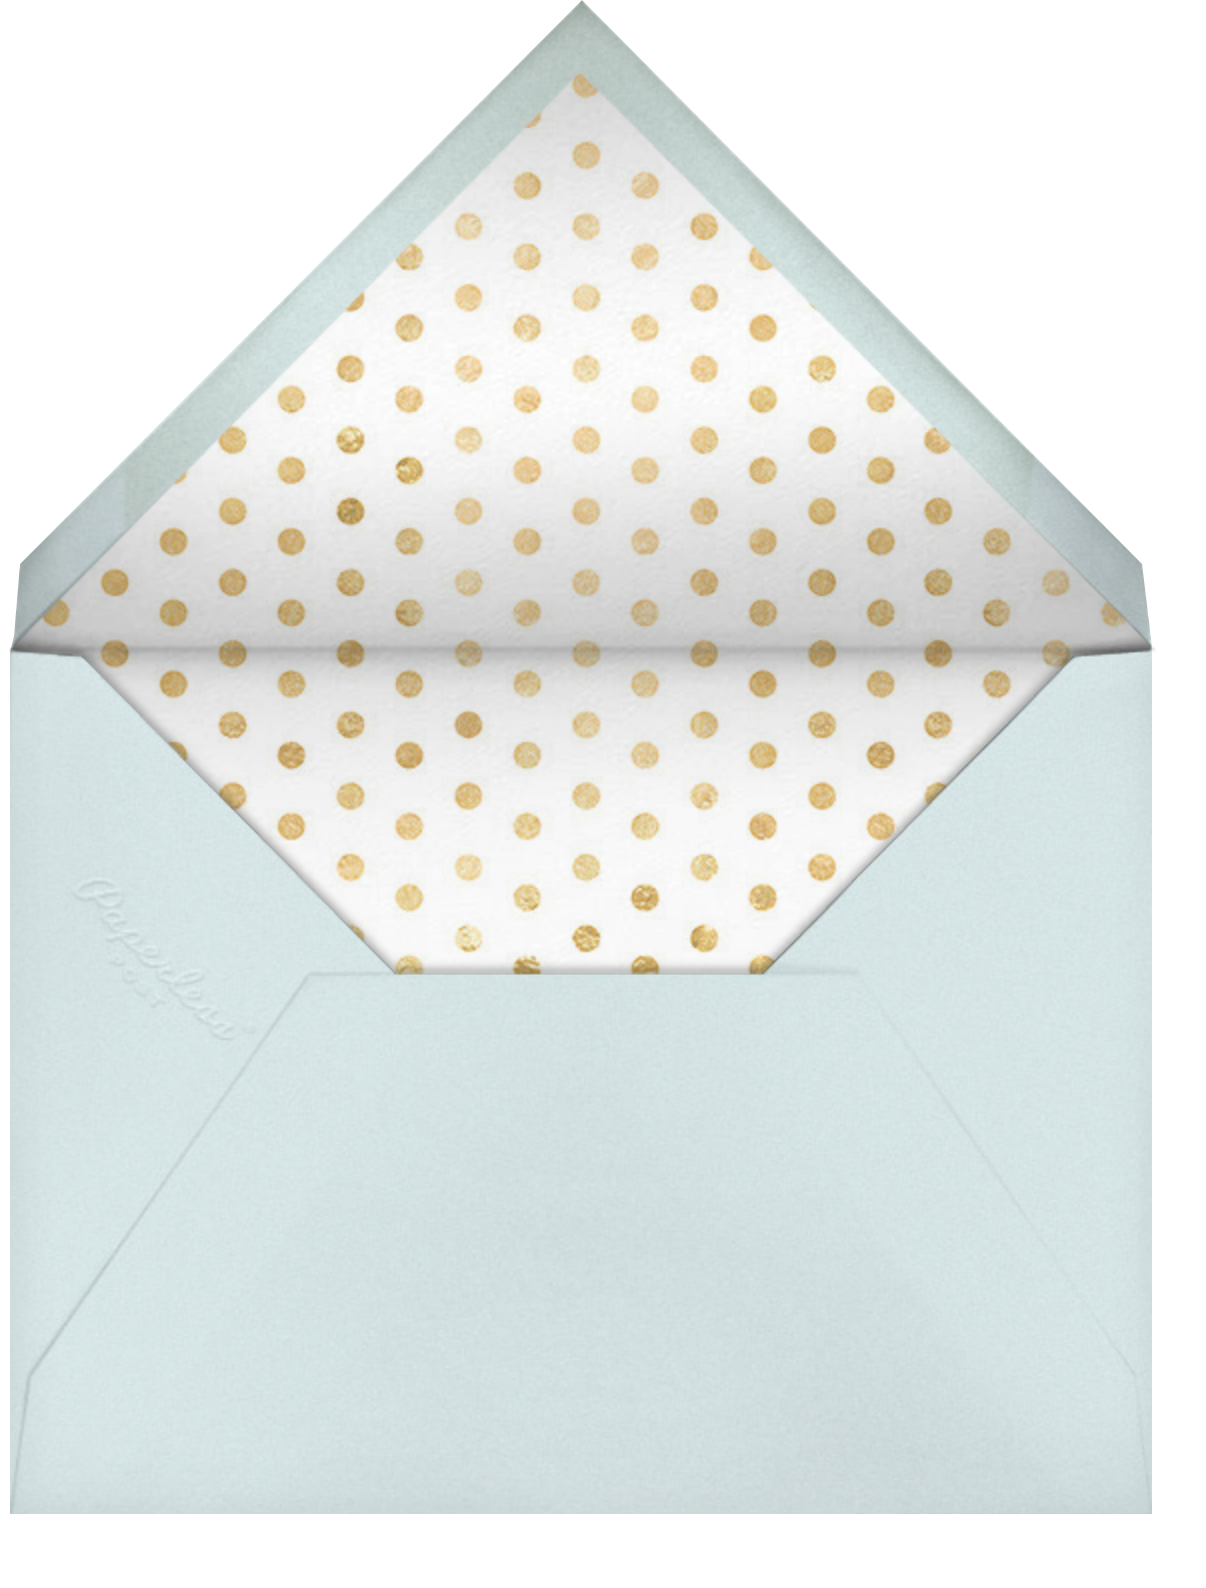 Daisy Place Shower - kate spade new york - Baby shower - envelope back